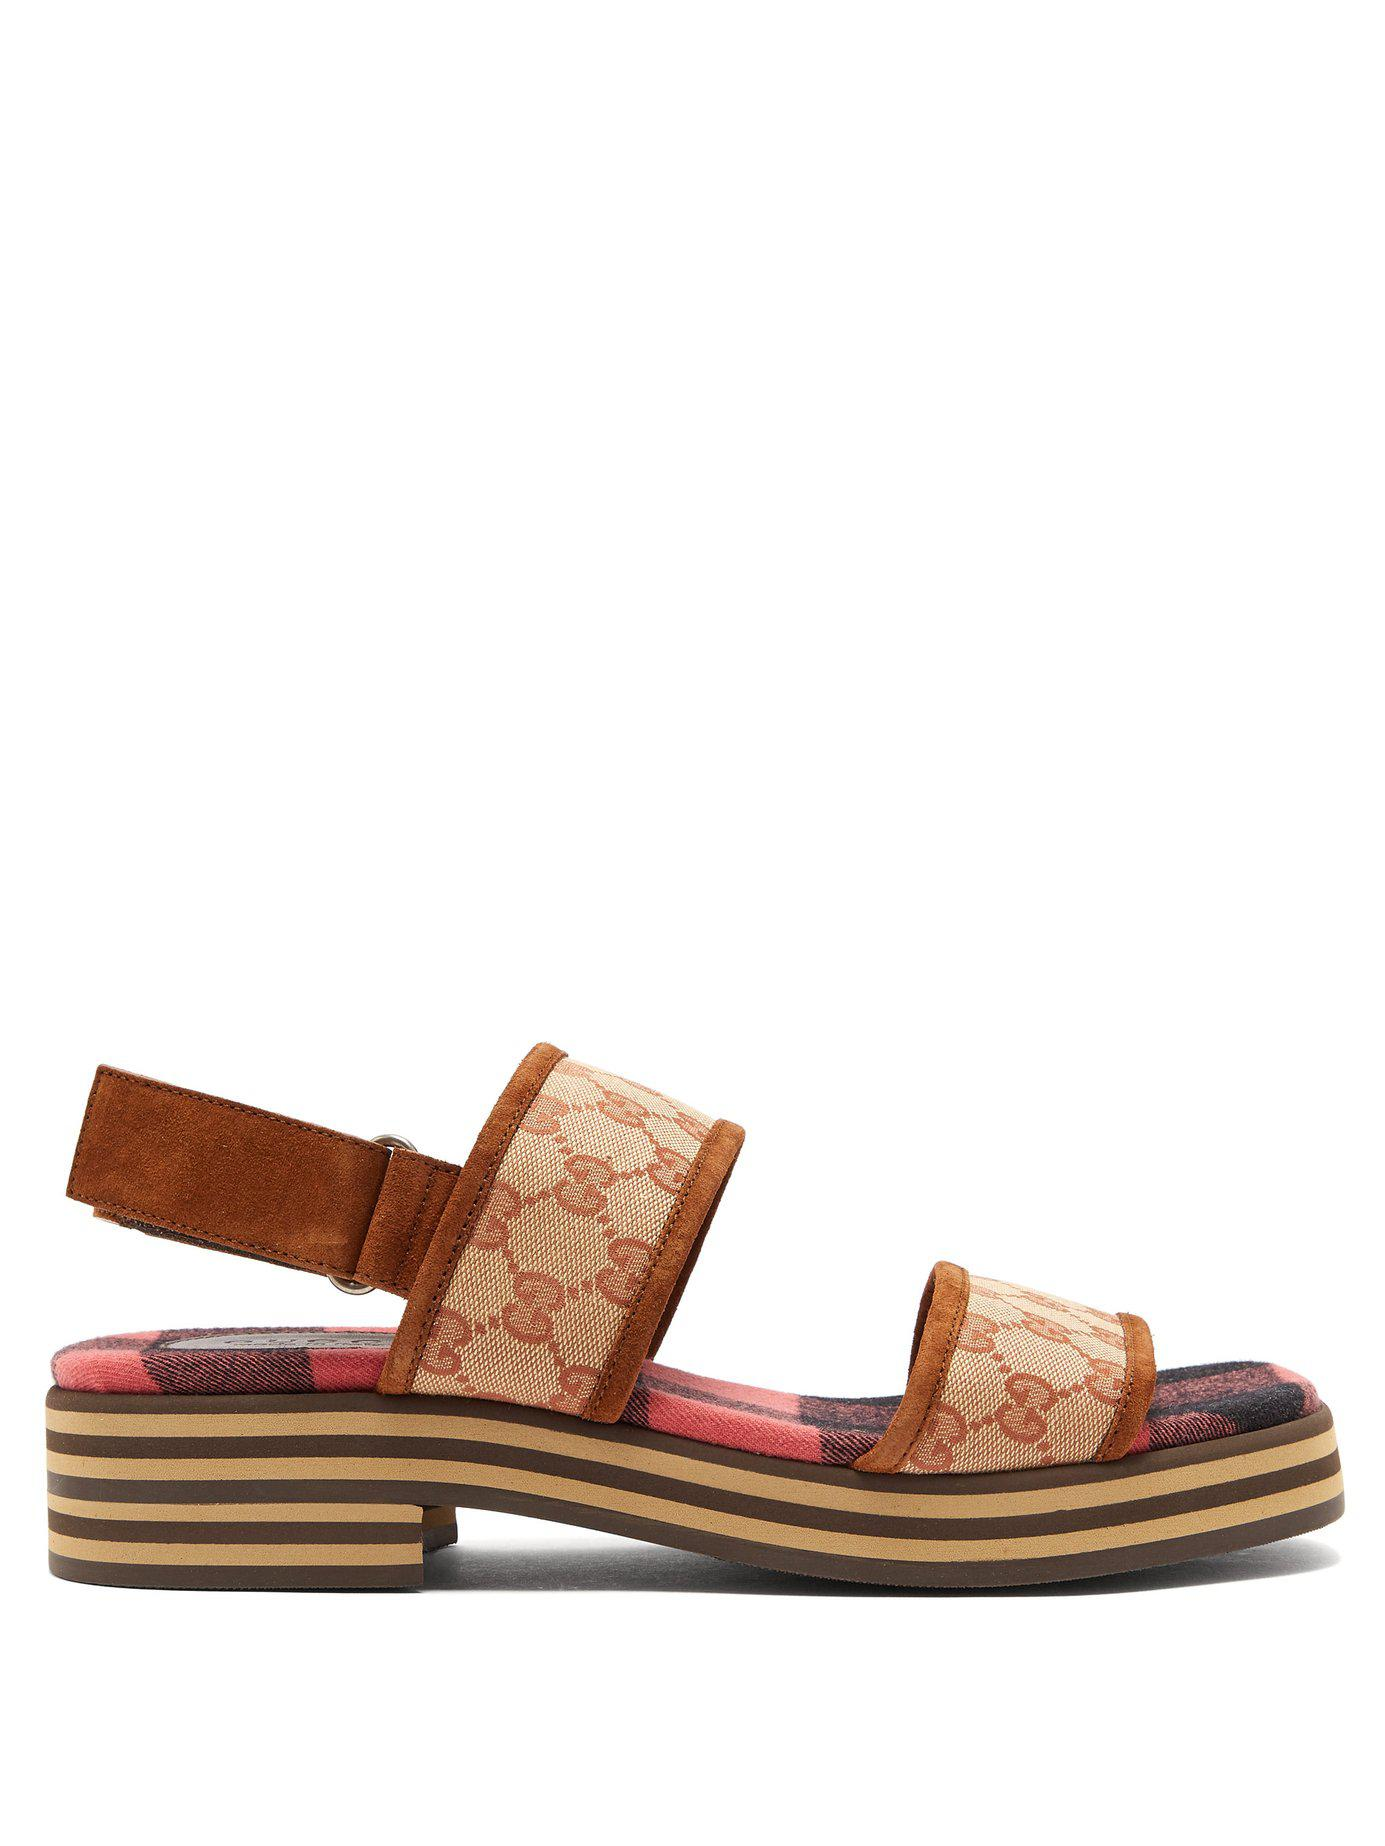 d64e48c1a6e1 Lyst - Gucci Gg Supreme Stacked Sole Suede Sandals in Brown for Men